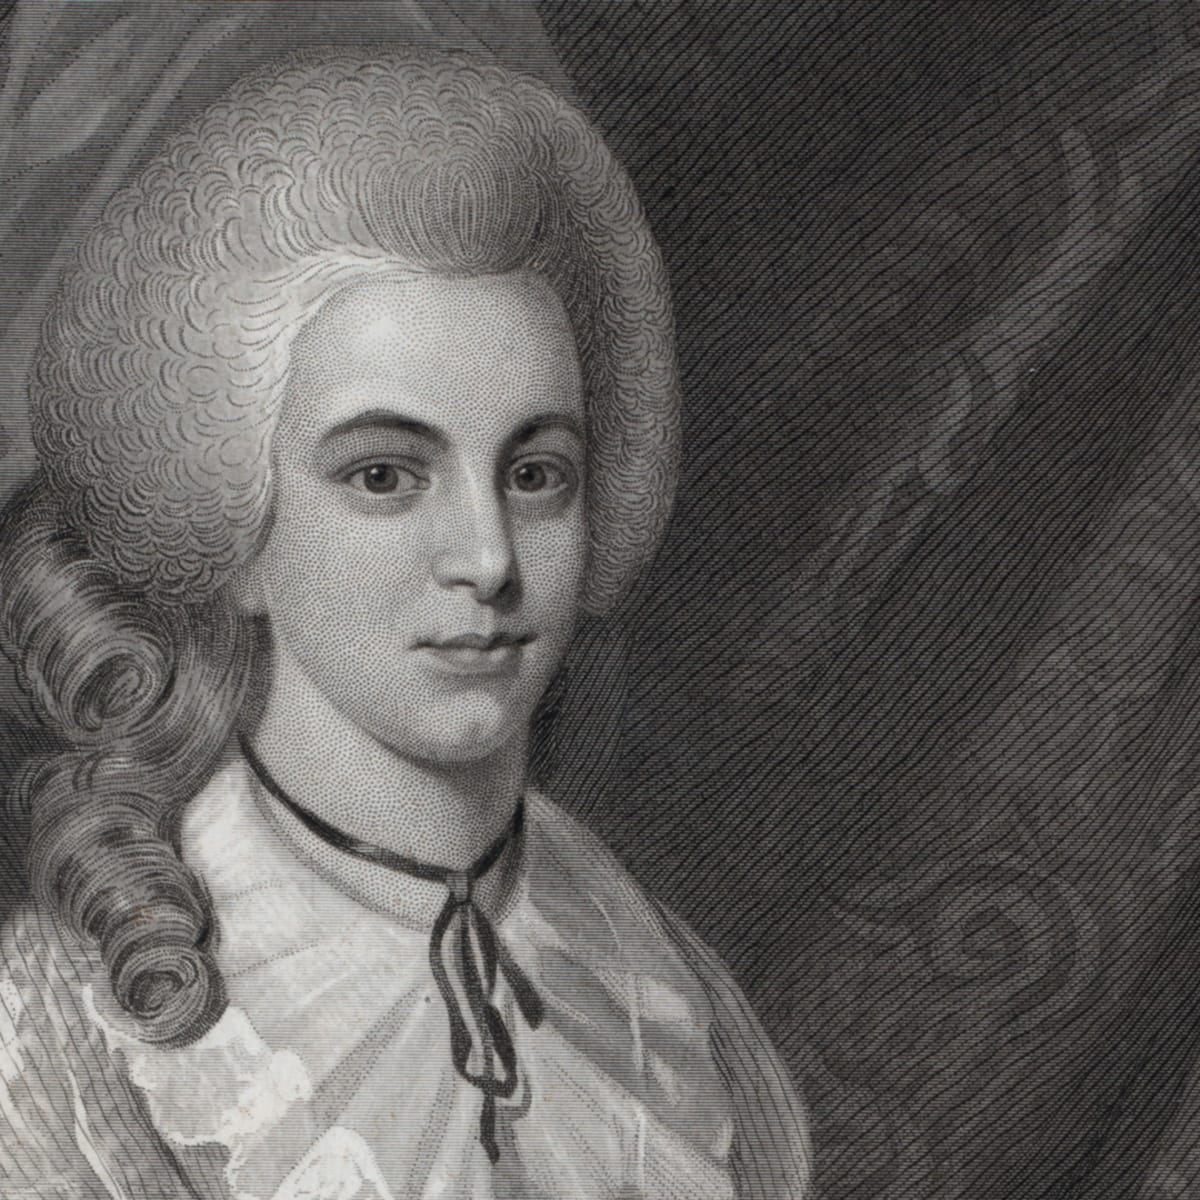 How Alexander Hamilton S Widow Eliza Carried On His Legacy History When eliza hamilton died in 1854, she was buried directly in front of her husband's grave. widow eliza carried on his legacy